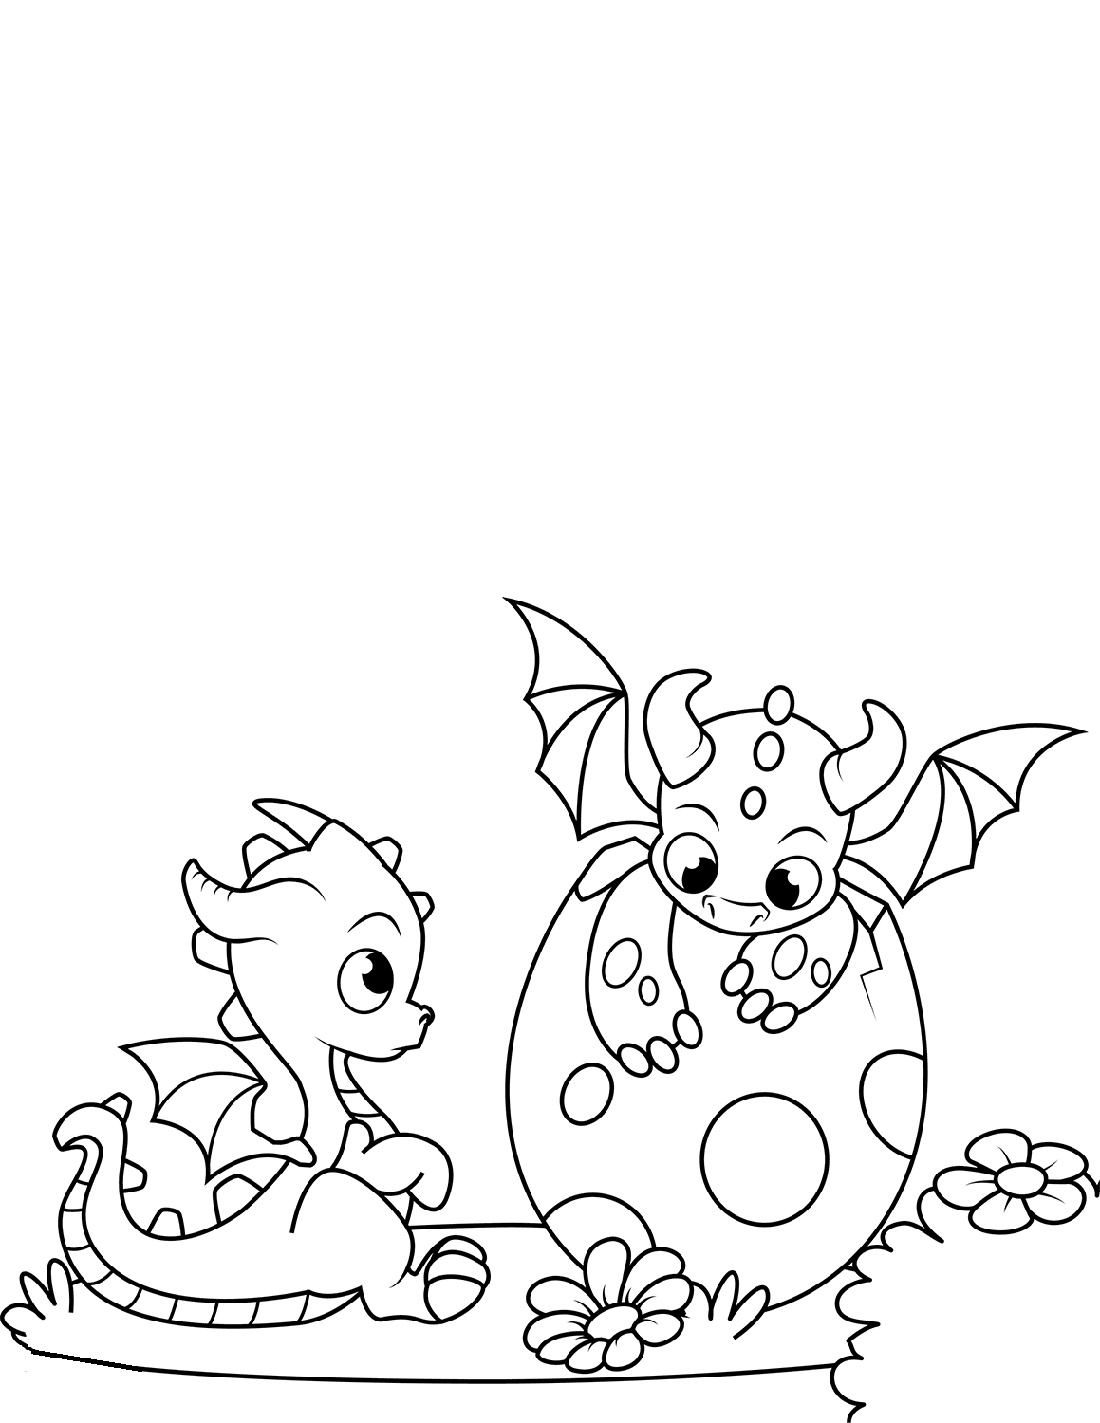 Baby Dragon Coloring Pages K5 Worksheets